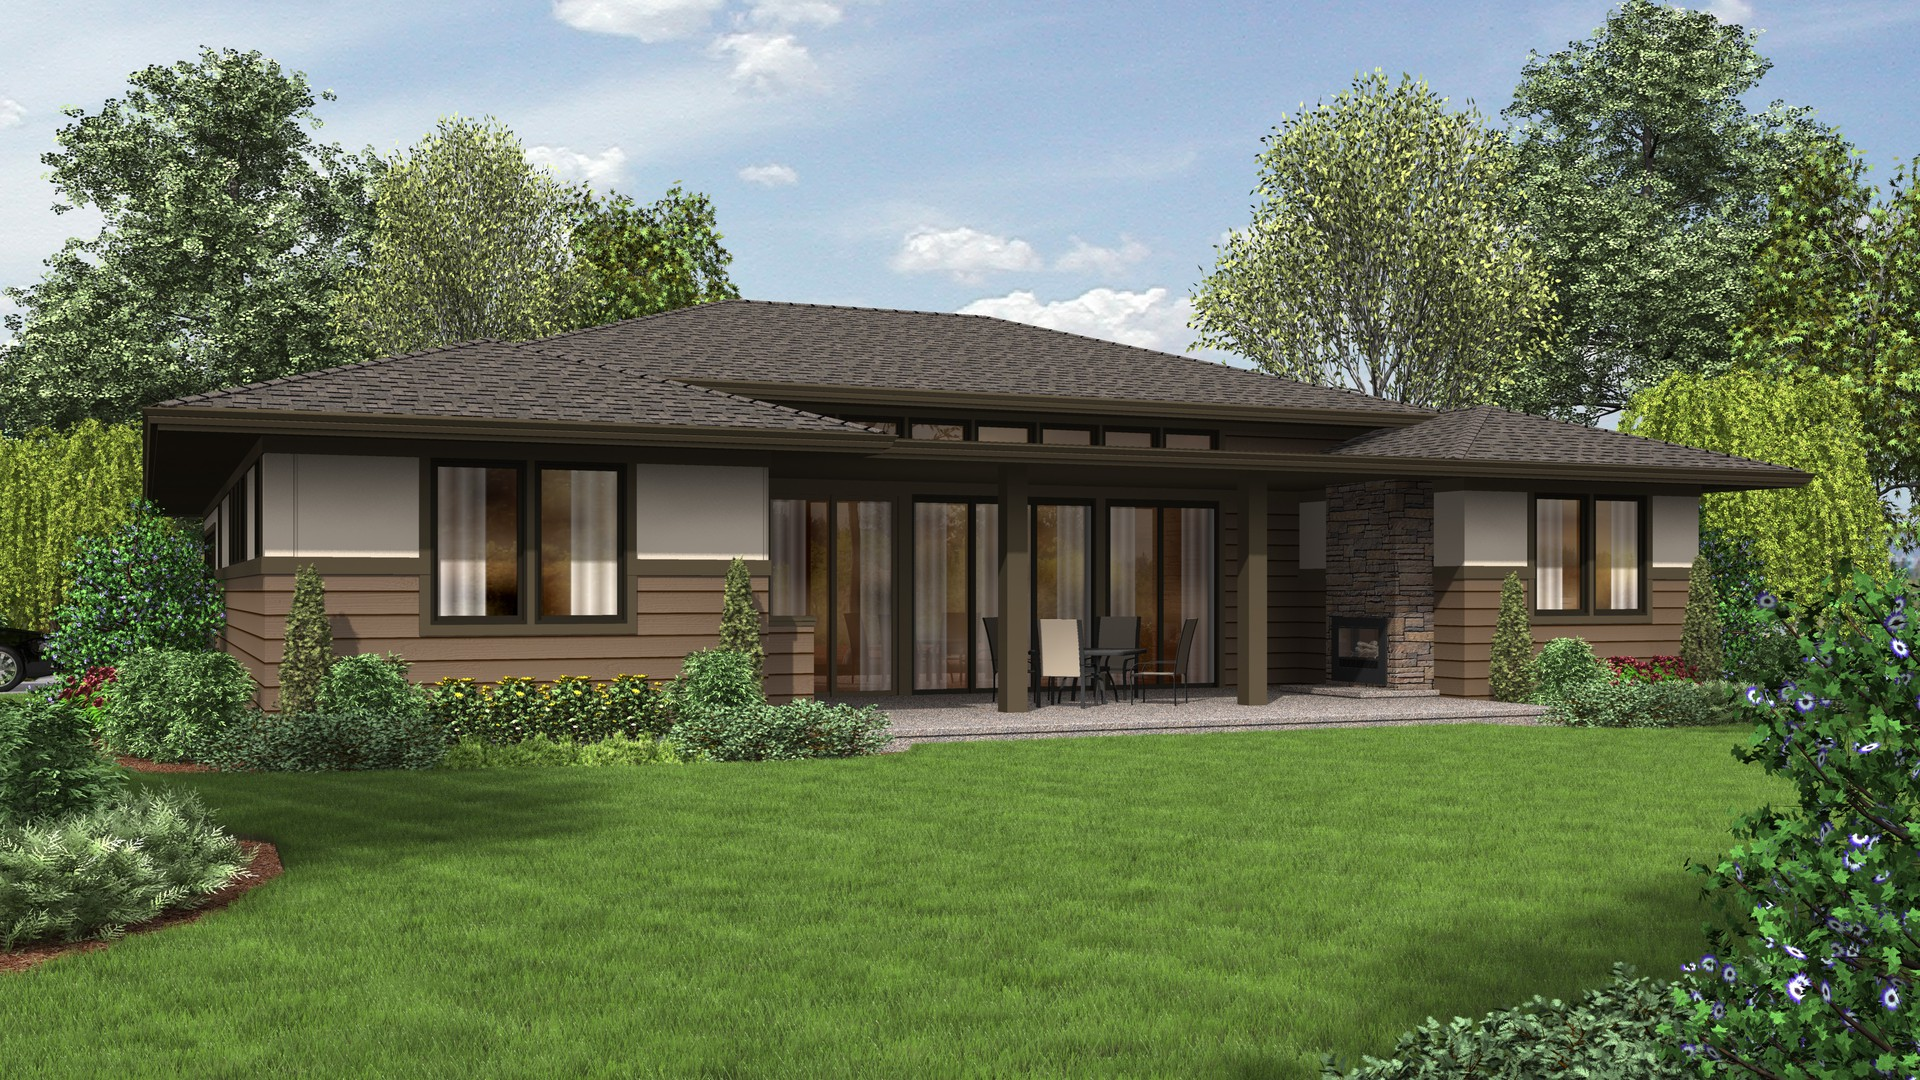 Contemporary house plan 1247 the dallas 2136 sqft 4 beds for Dallas house plans